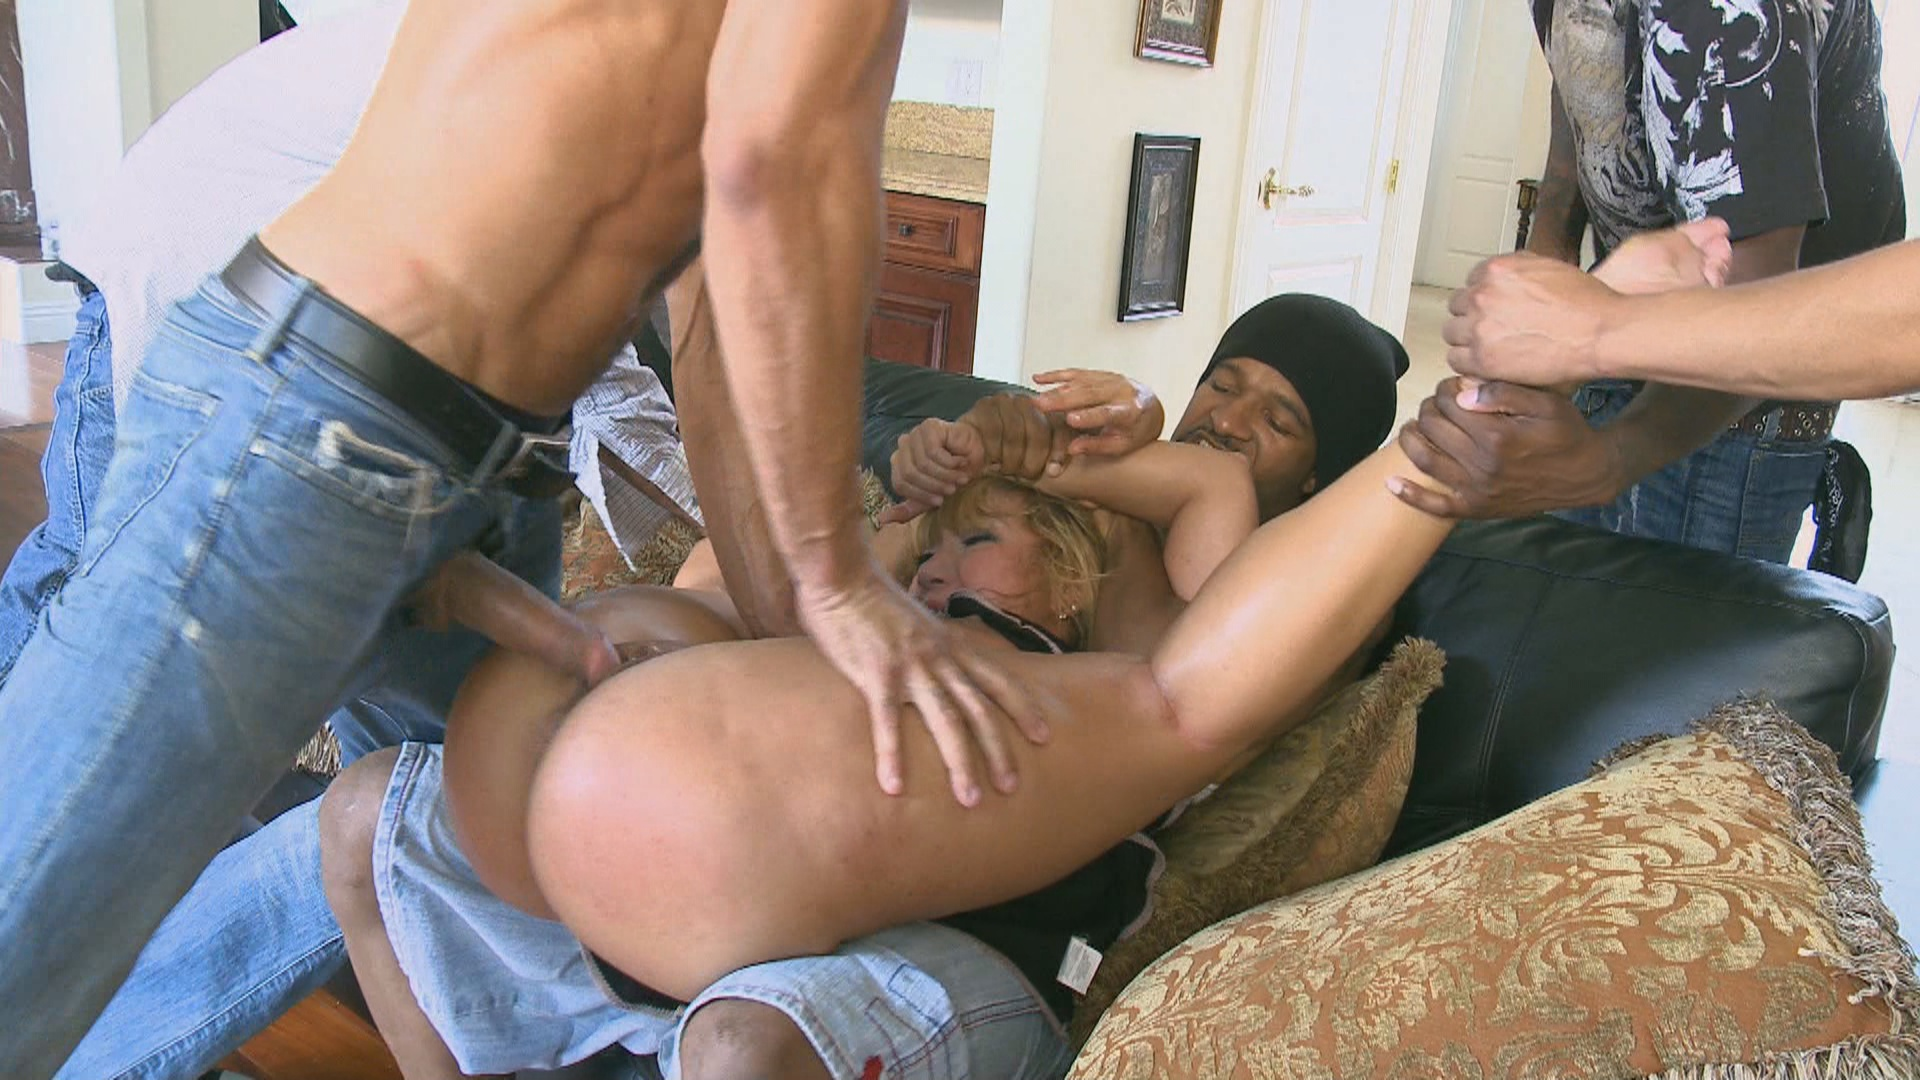 Hardcore Gangbang: Rich MILF Taken Down And Gangbanged By Her Daughters Black Thug Friends xvideos181653